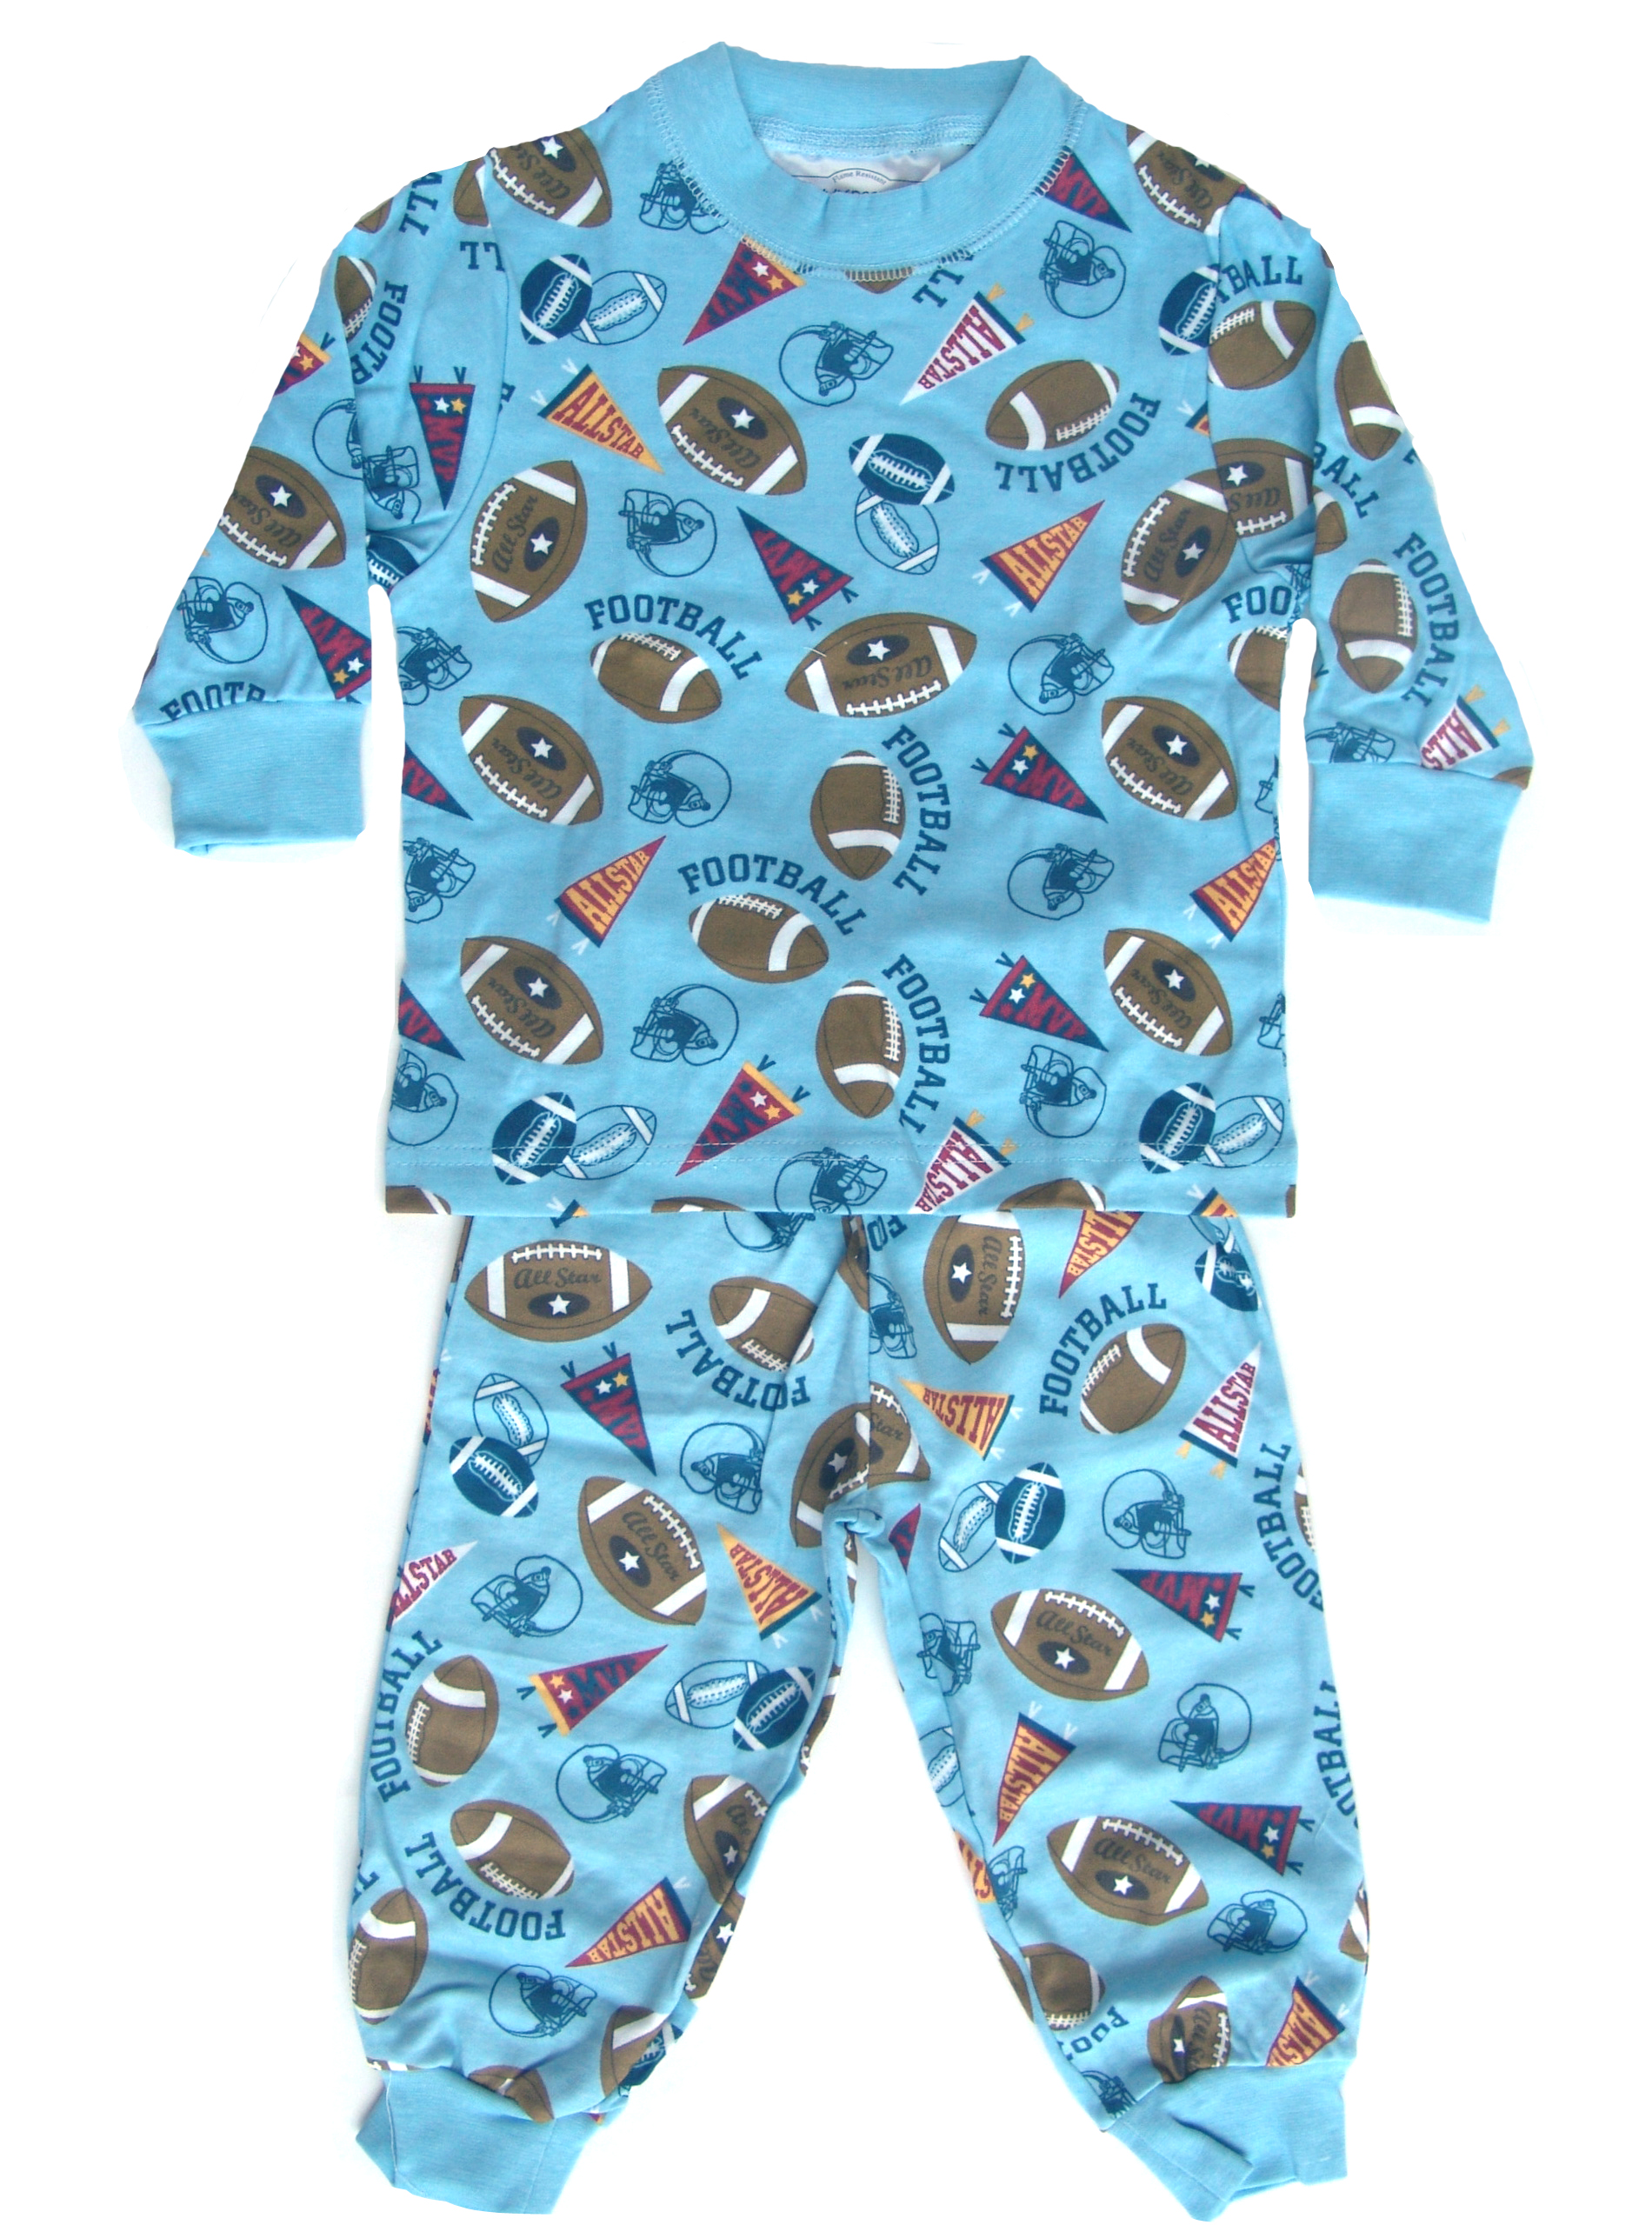 Pajamas Clipart - Clipart Kid